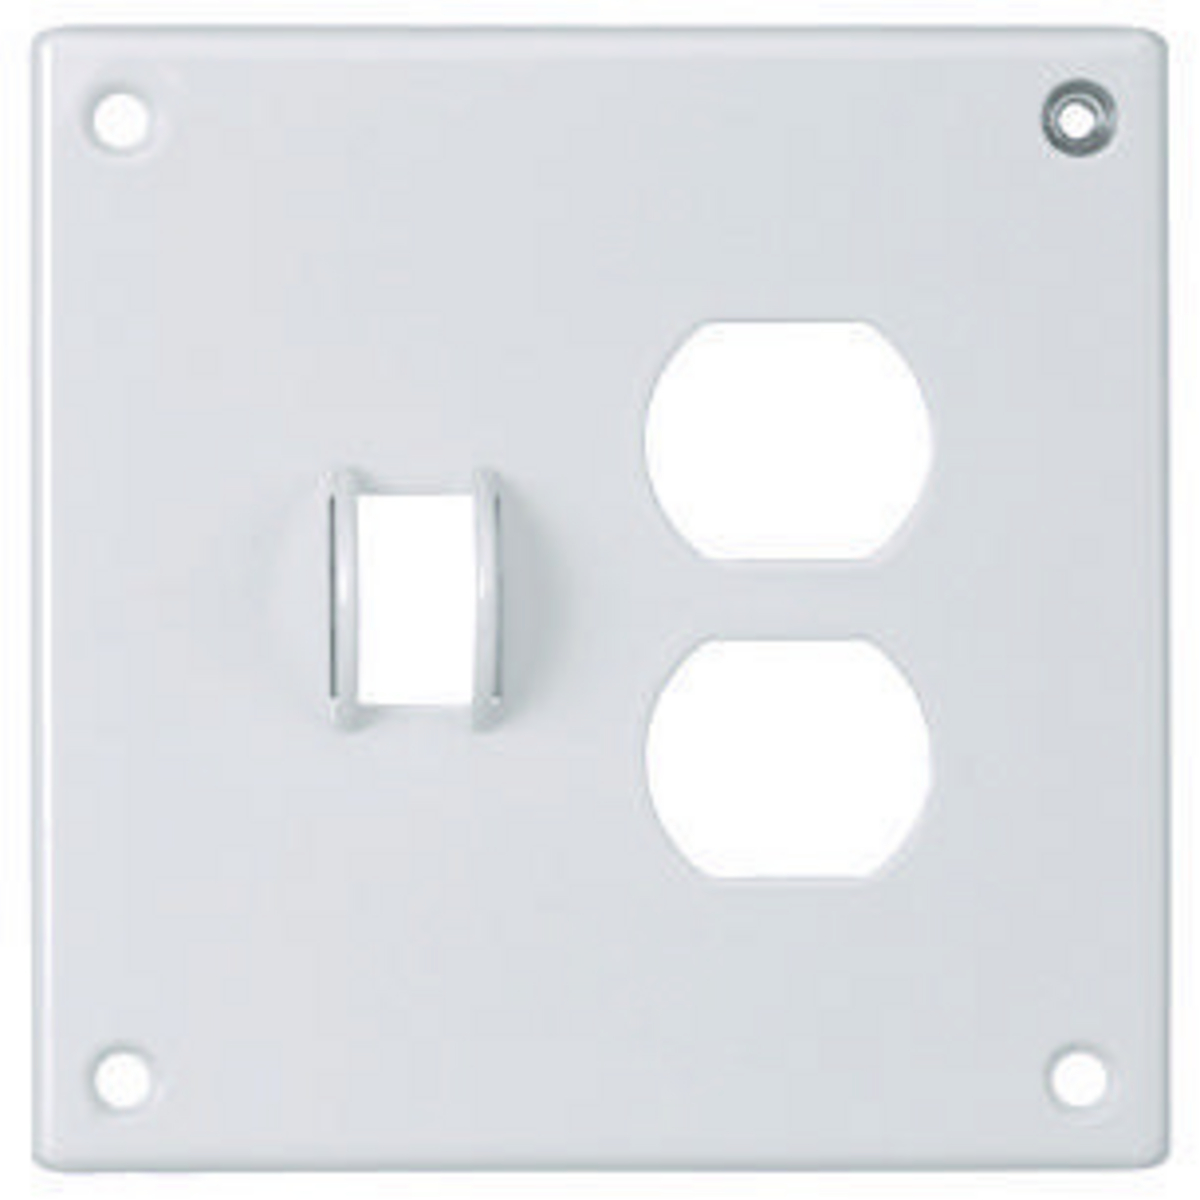 Hubbell SWP18 SEC WALLPLATE, 2-G, TOG/DUP, WH